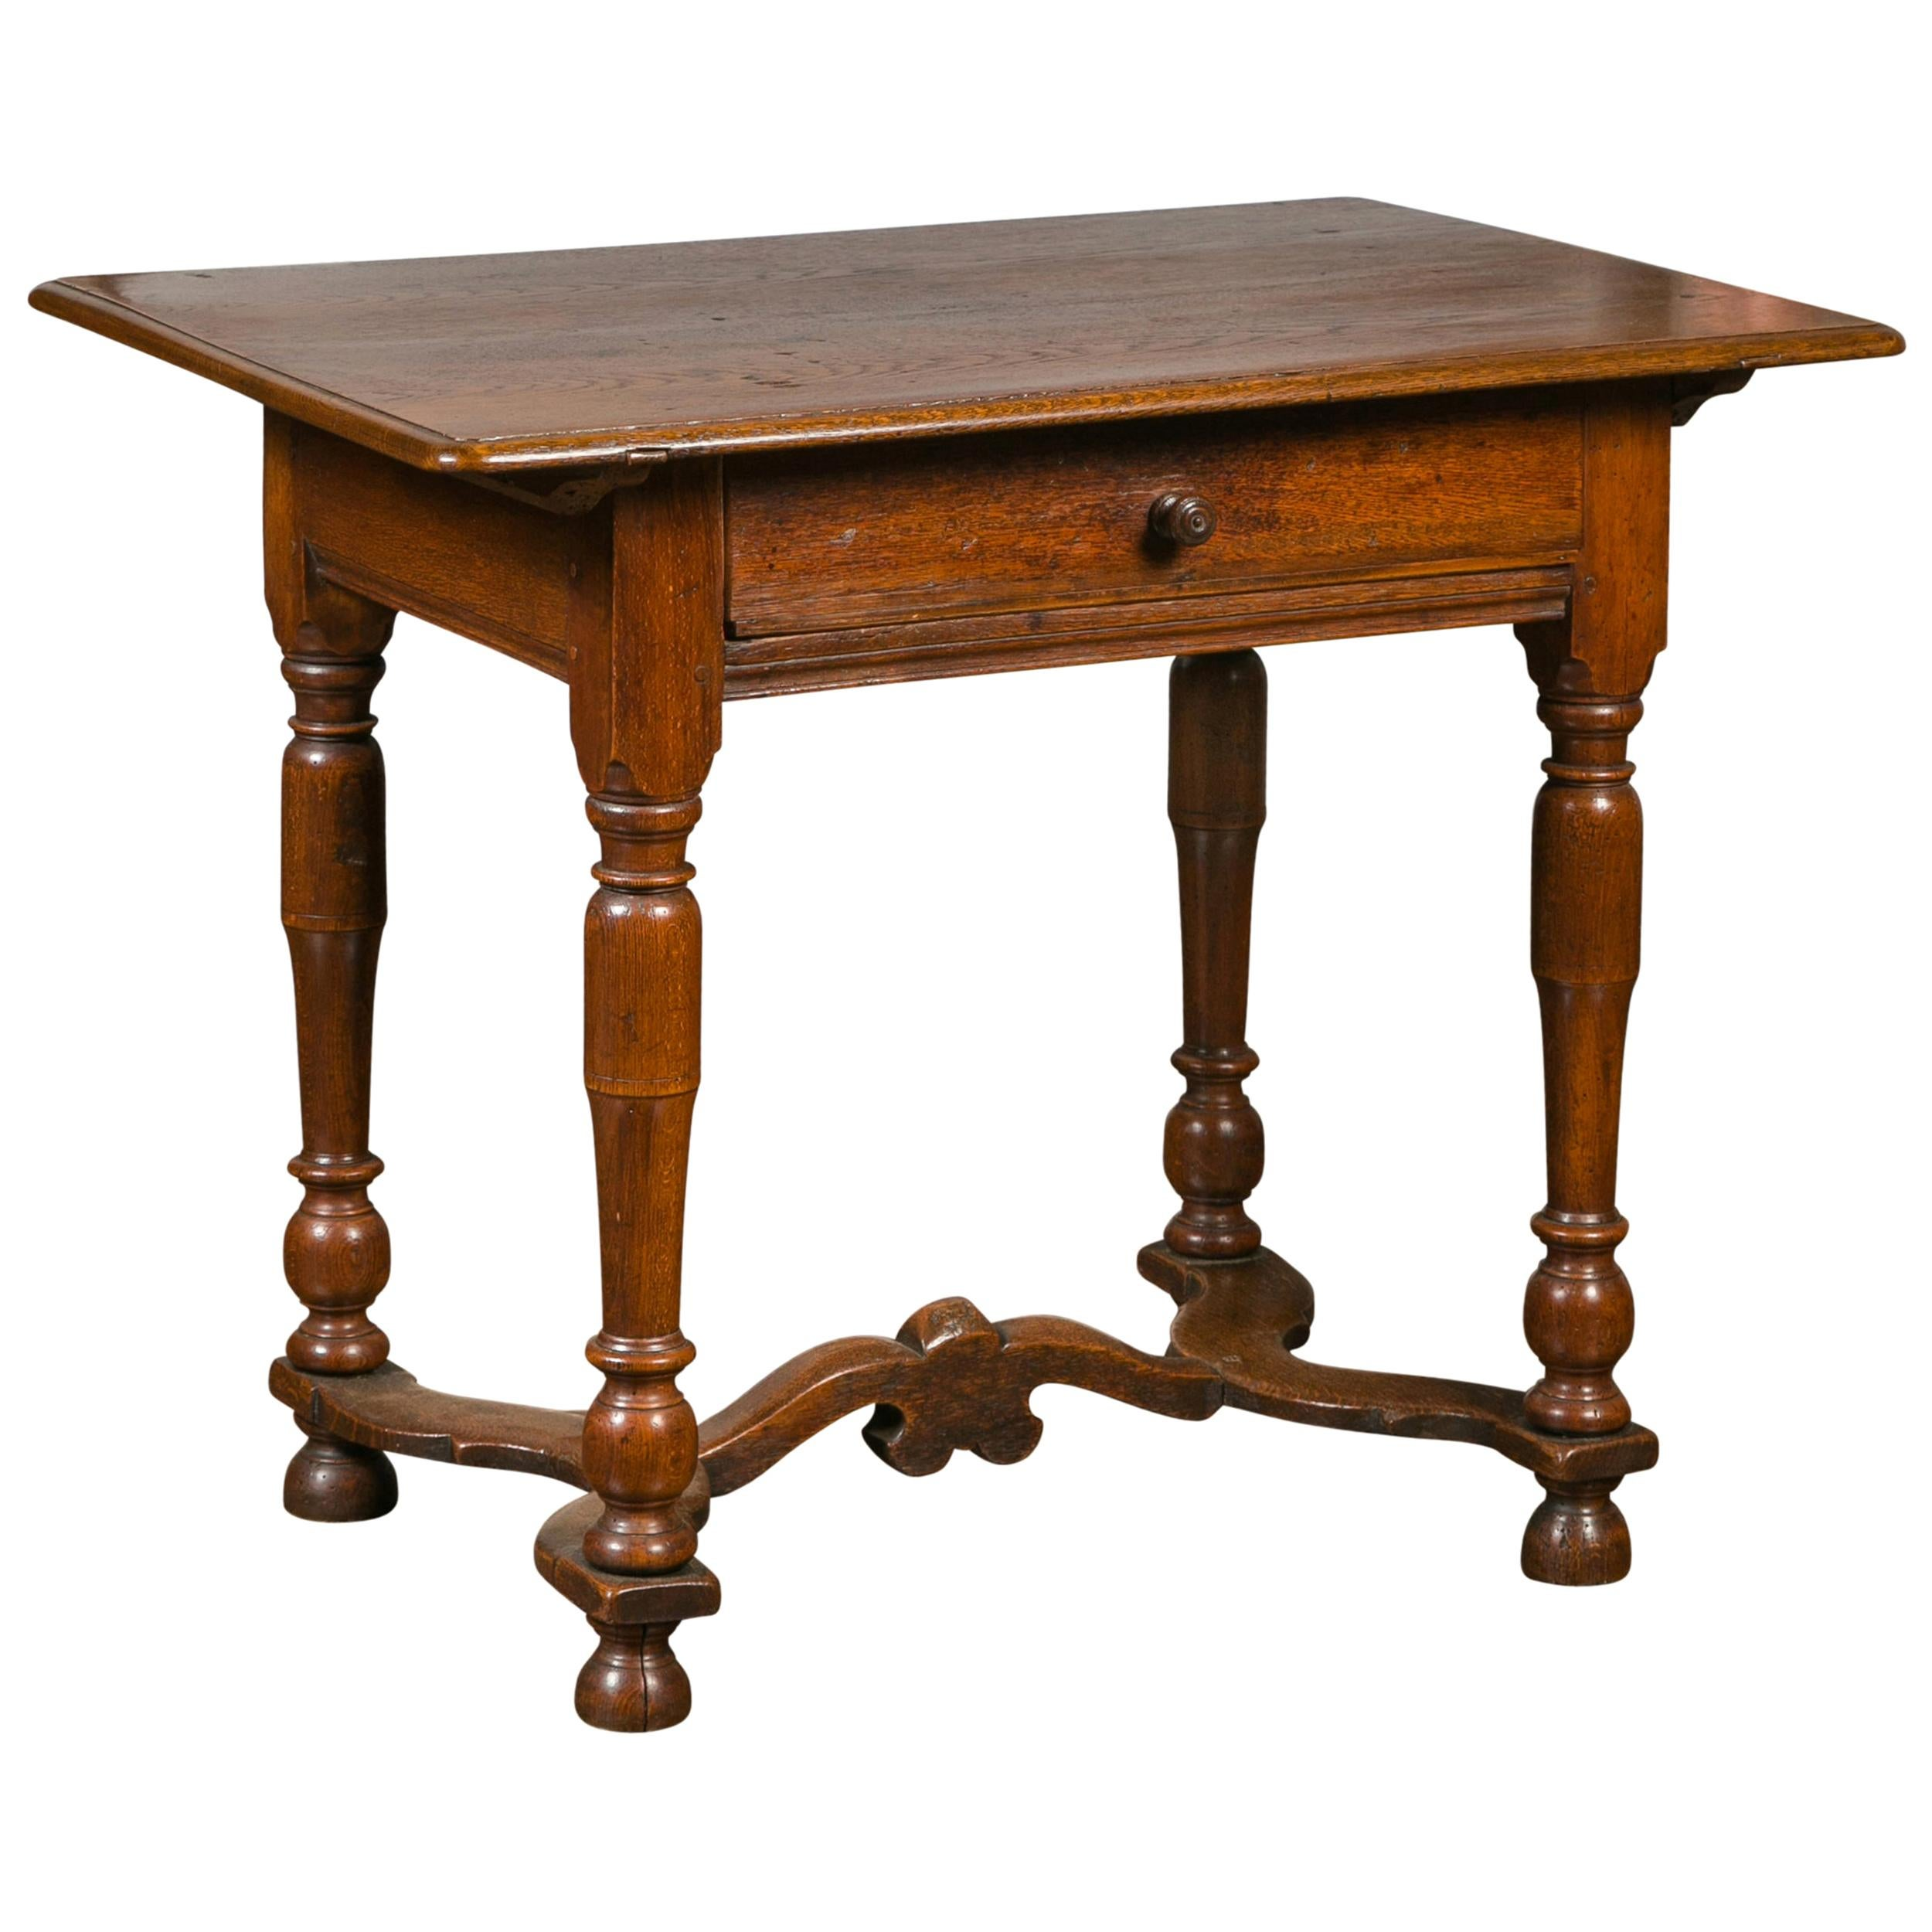 English 1870s Oak Side Table with Single Drawer, Turned Legs and Cross Stretcher